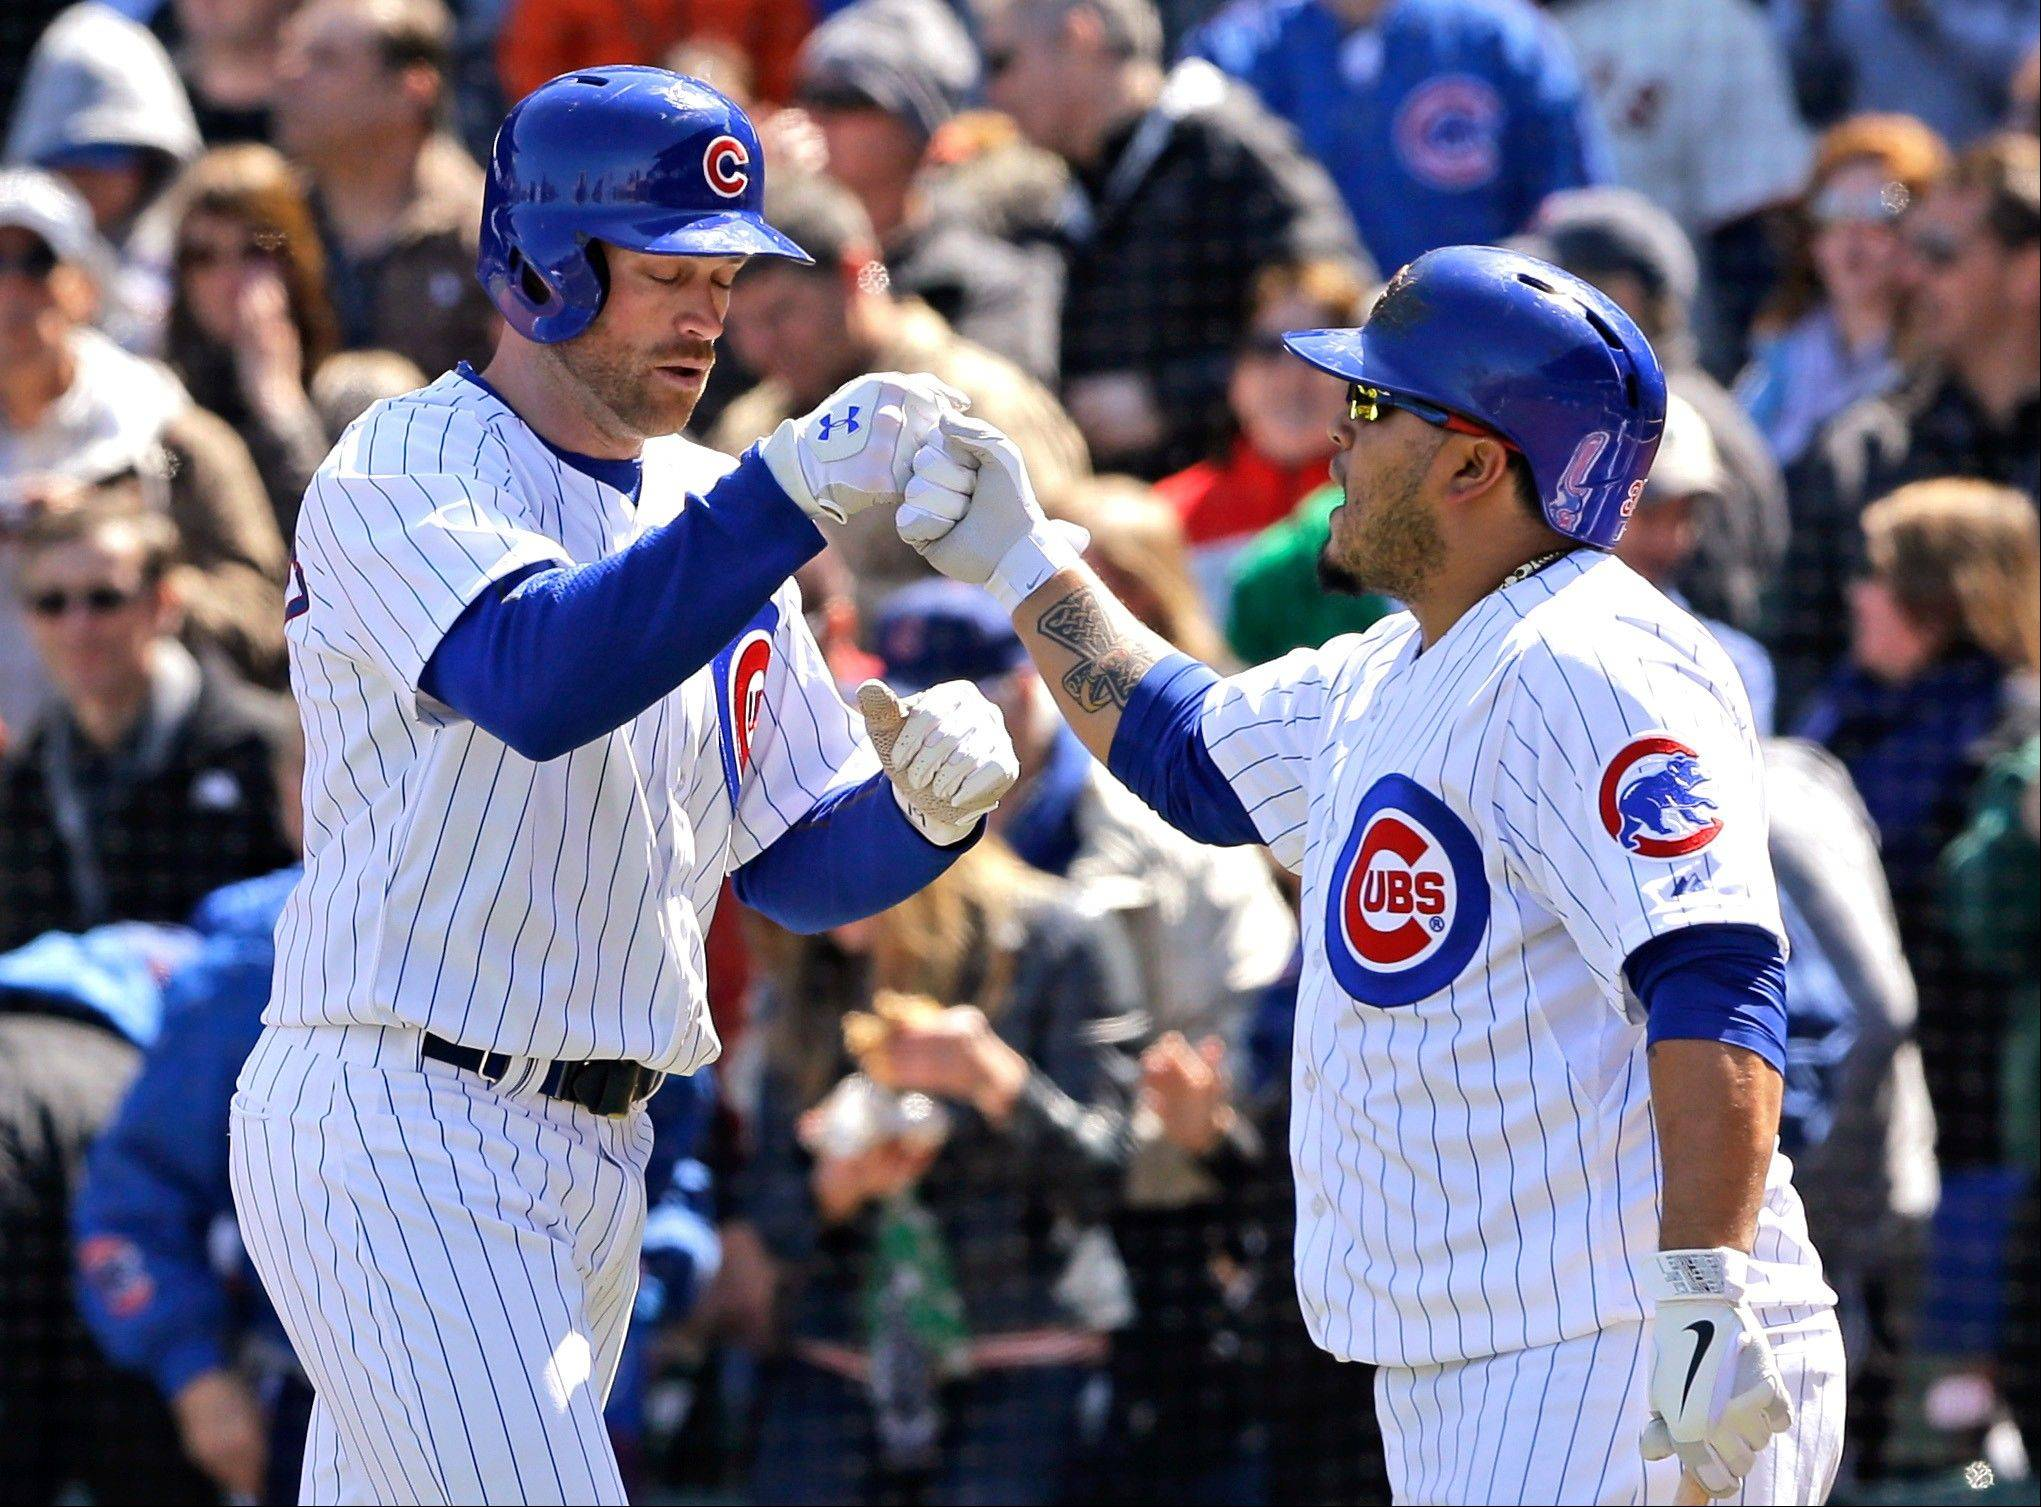 The Cubs' Nate Schierholtz, left, celebrates with Dioner Navarro after hitting a two-run home run during Sunday's first inning at Wrigley Field.